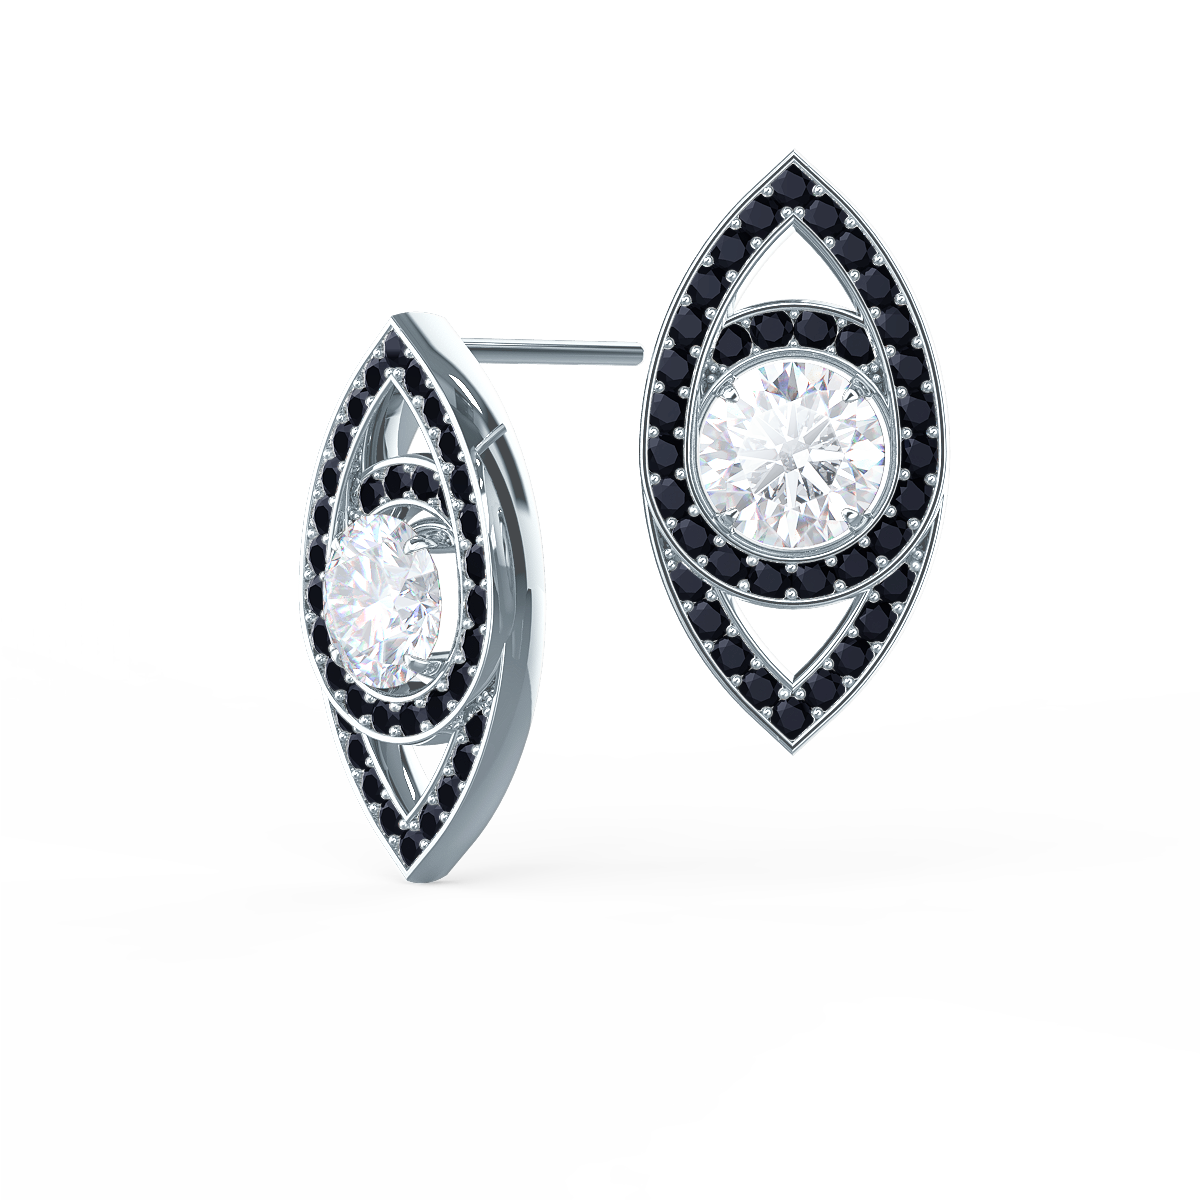 Marquise Eye Studs by Ada Diamonds. Lab grown diamond stud earrings in 18k white gold. Large round brilliant diamond center stone suspended in a marquise shape with black lab grown diamonds.